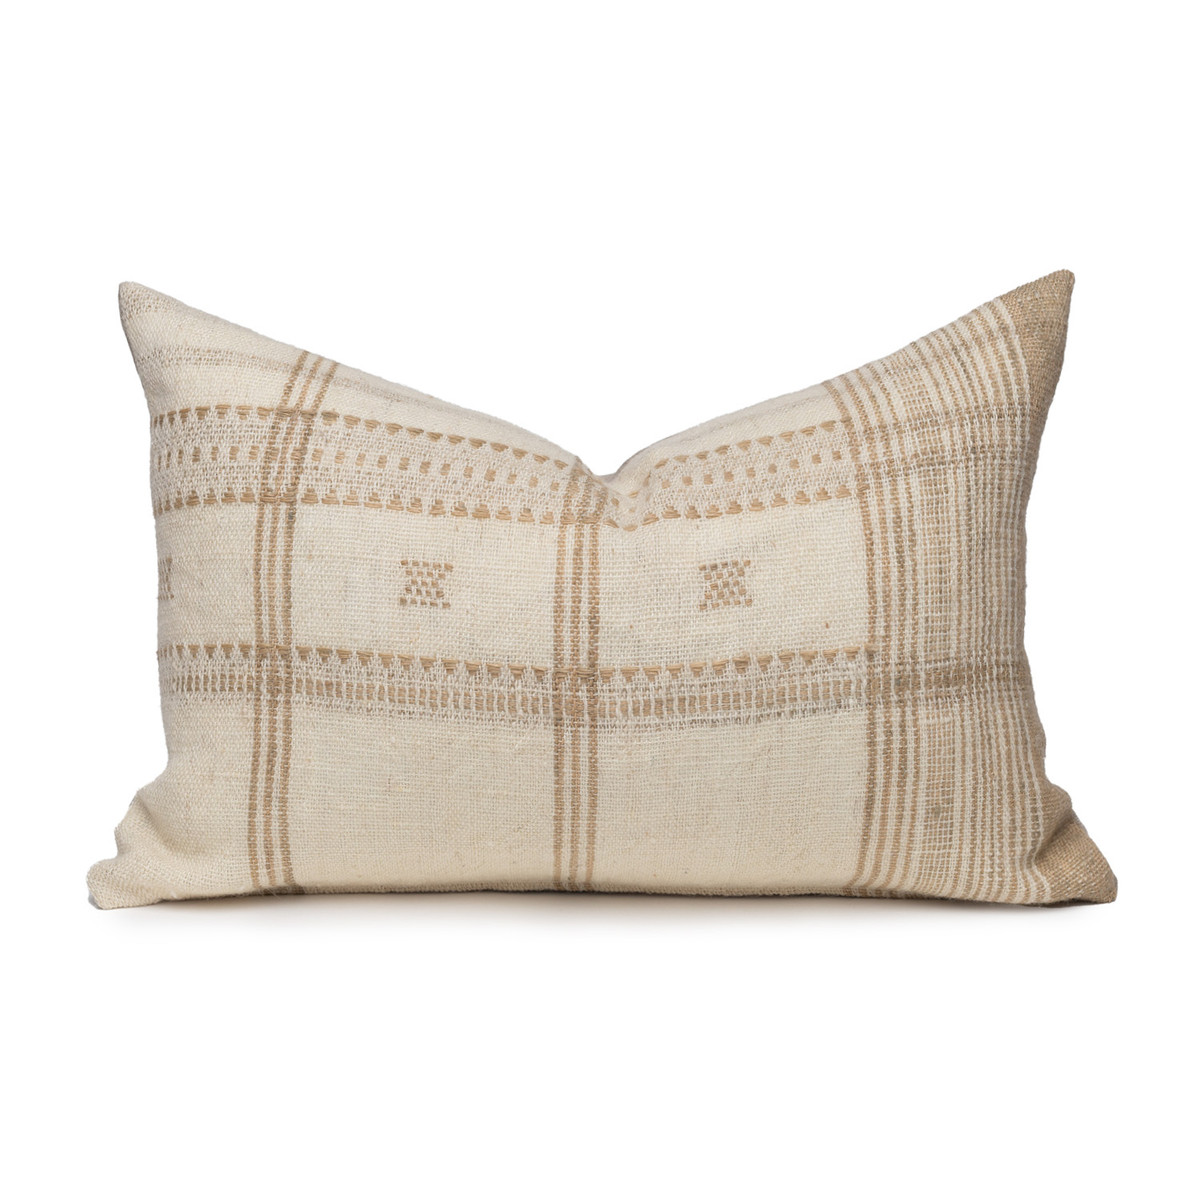 Myra Lumbar Pillow in Creme & Ivory, Hand Loomed Indian Wool-1420- Front View